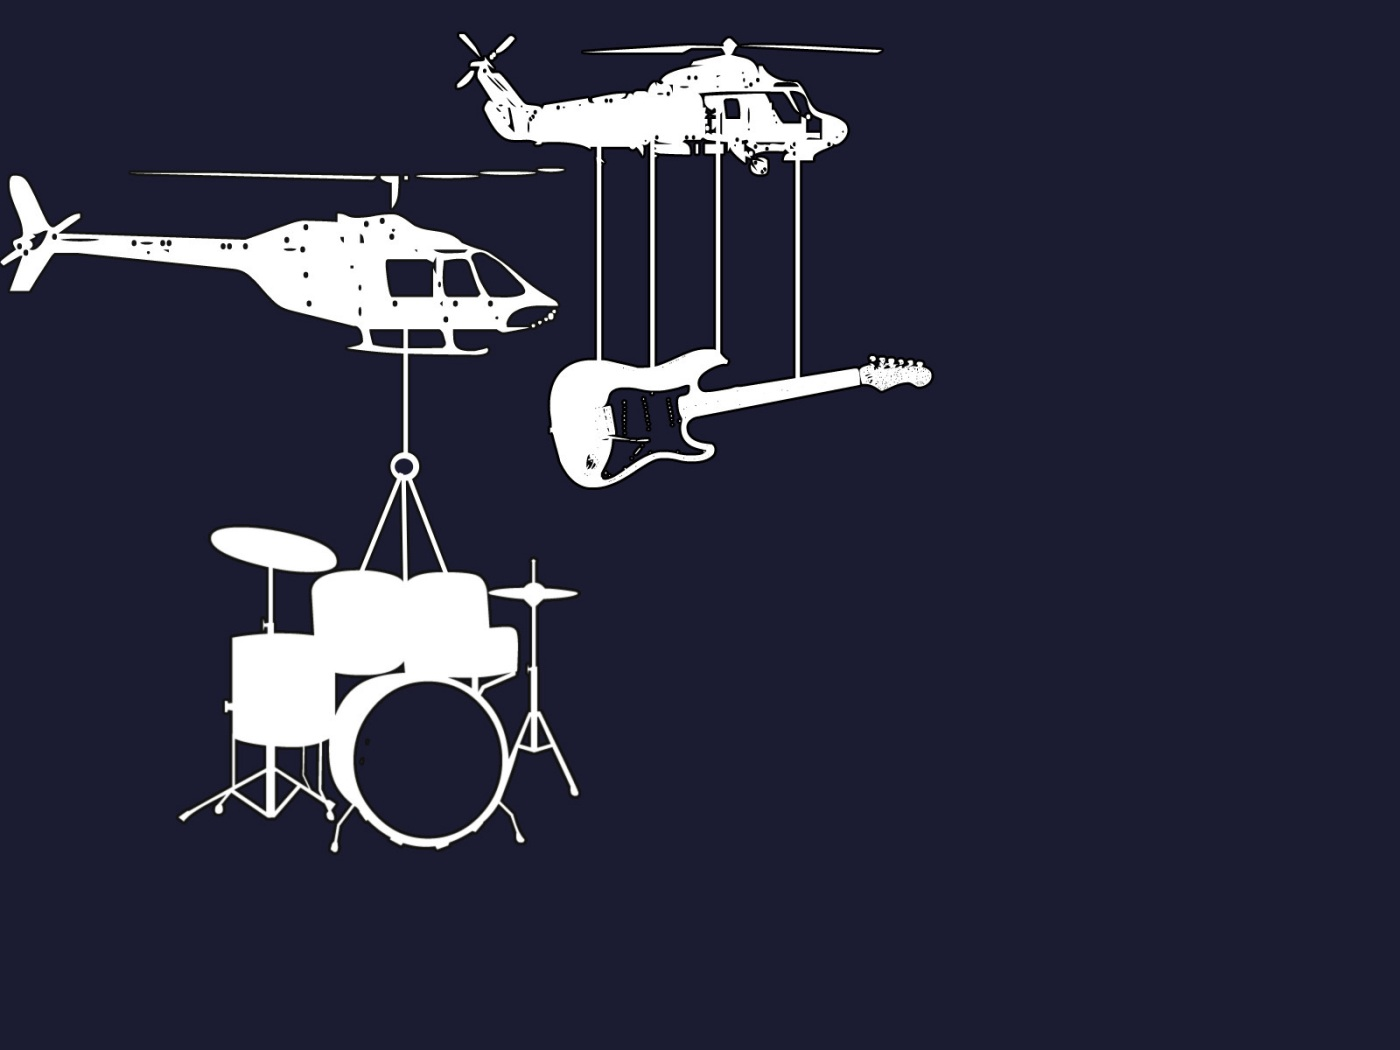 Guitar and drums wallpaper